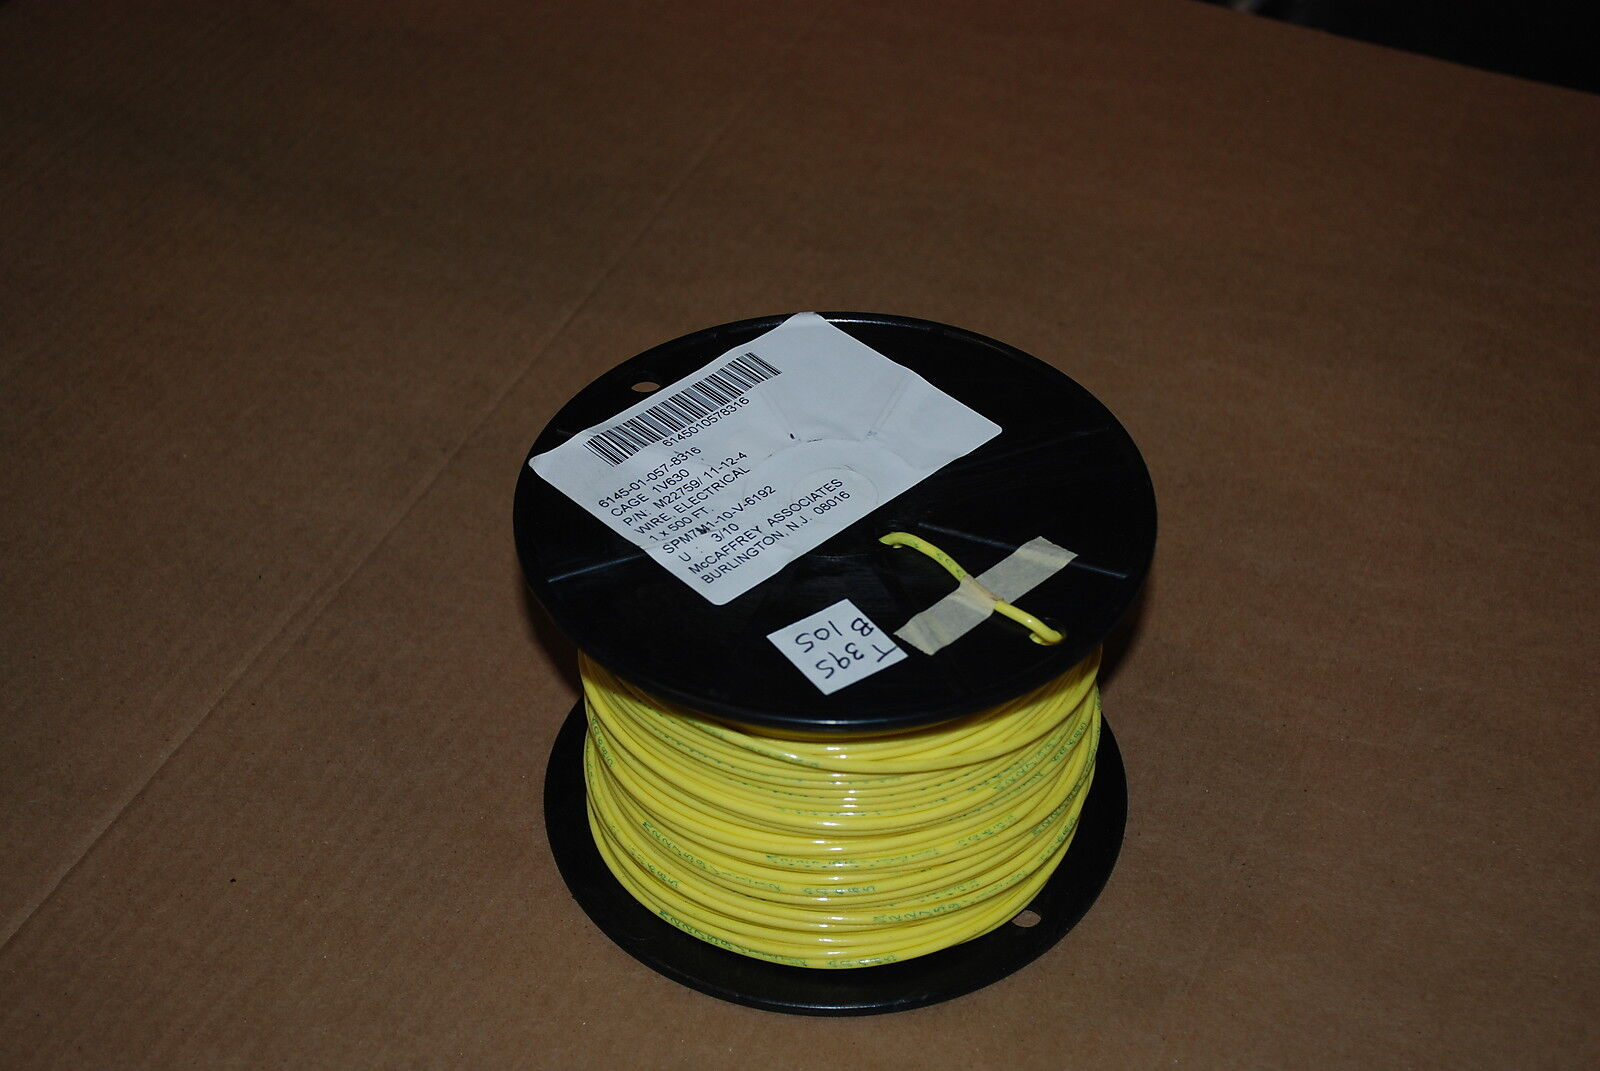 MIL SPEC WIRE M22759 11 12 4 SILVER PLATED AWG 100 FEET YELLOW